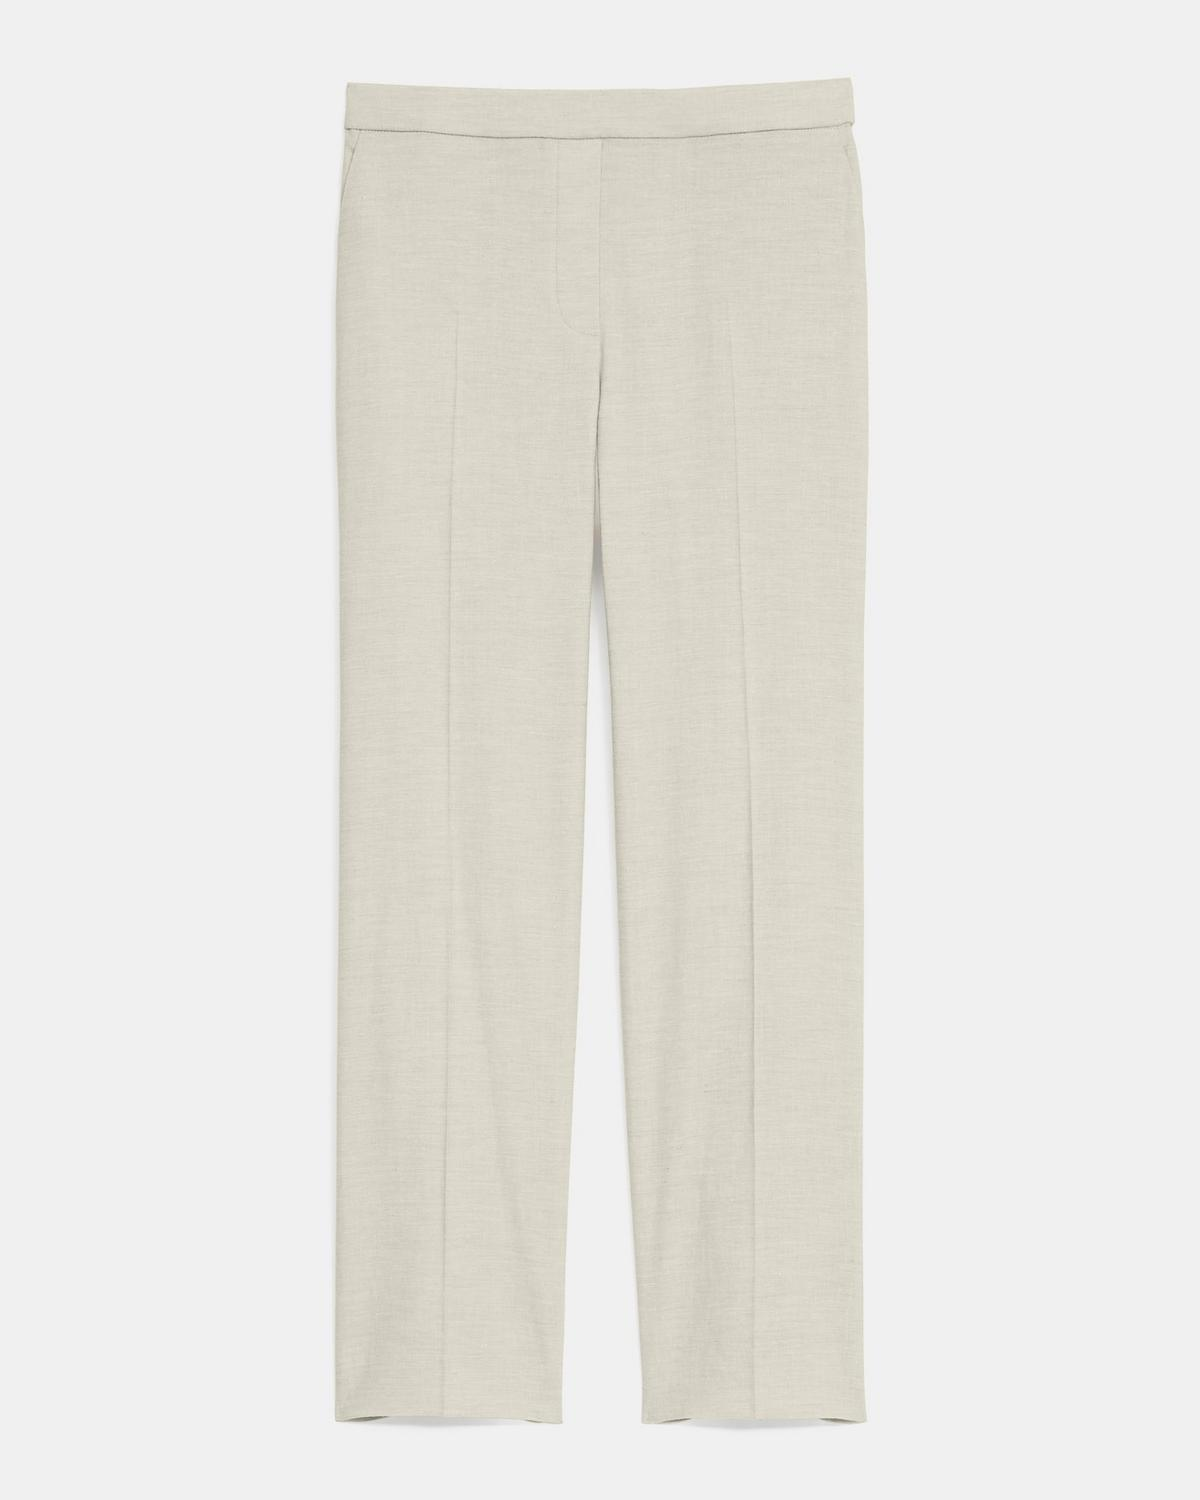 Treeca Pull-On Pant in Textured Good Linen